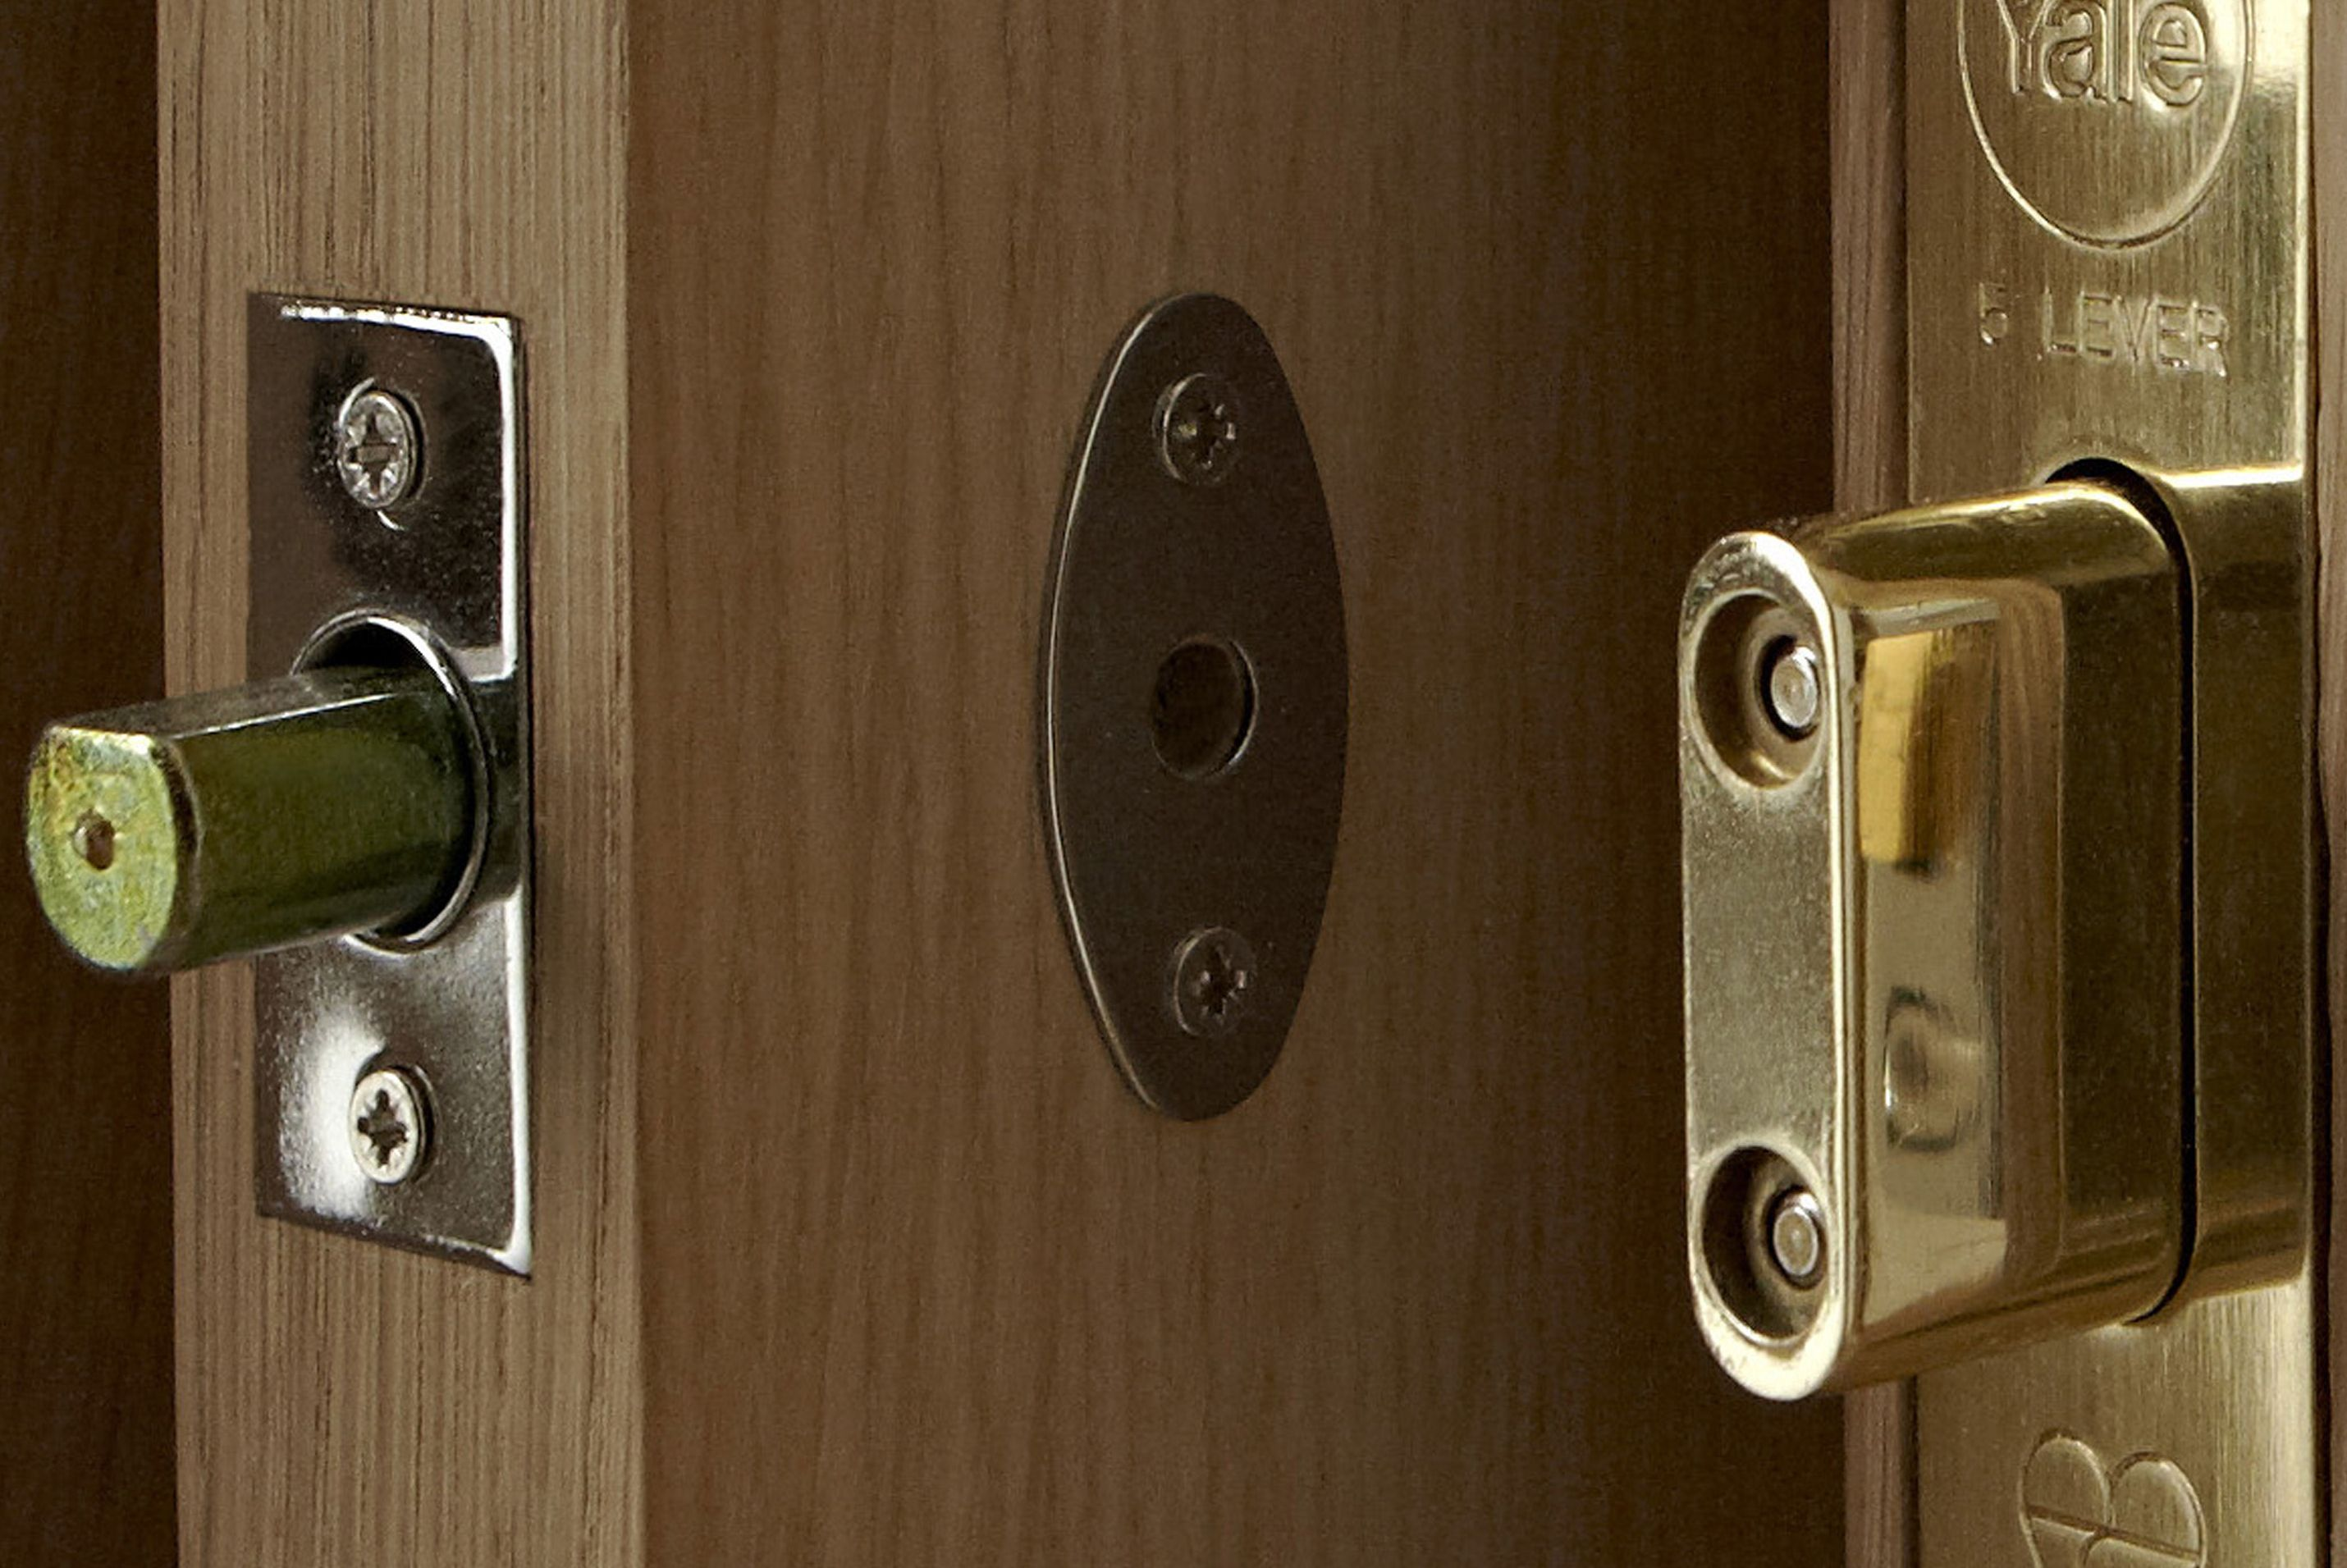 Door window locks buying guide ideas advice diy at bq for How to fix a bathroom door lock